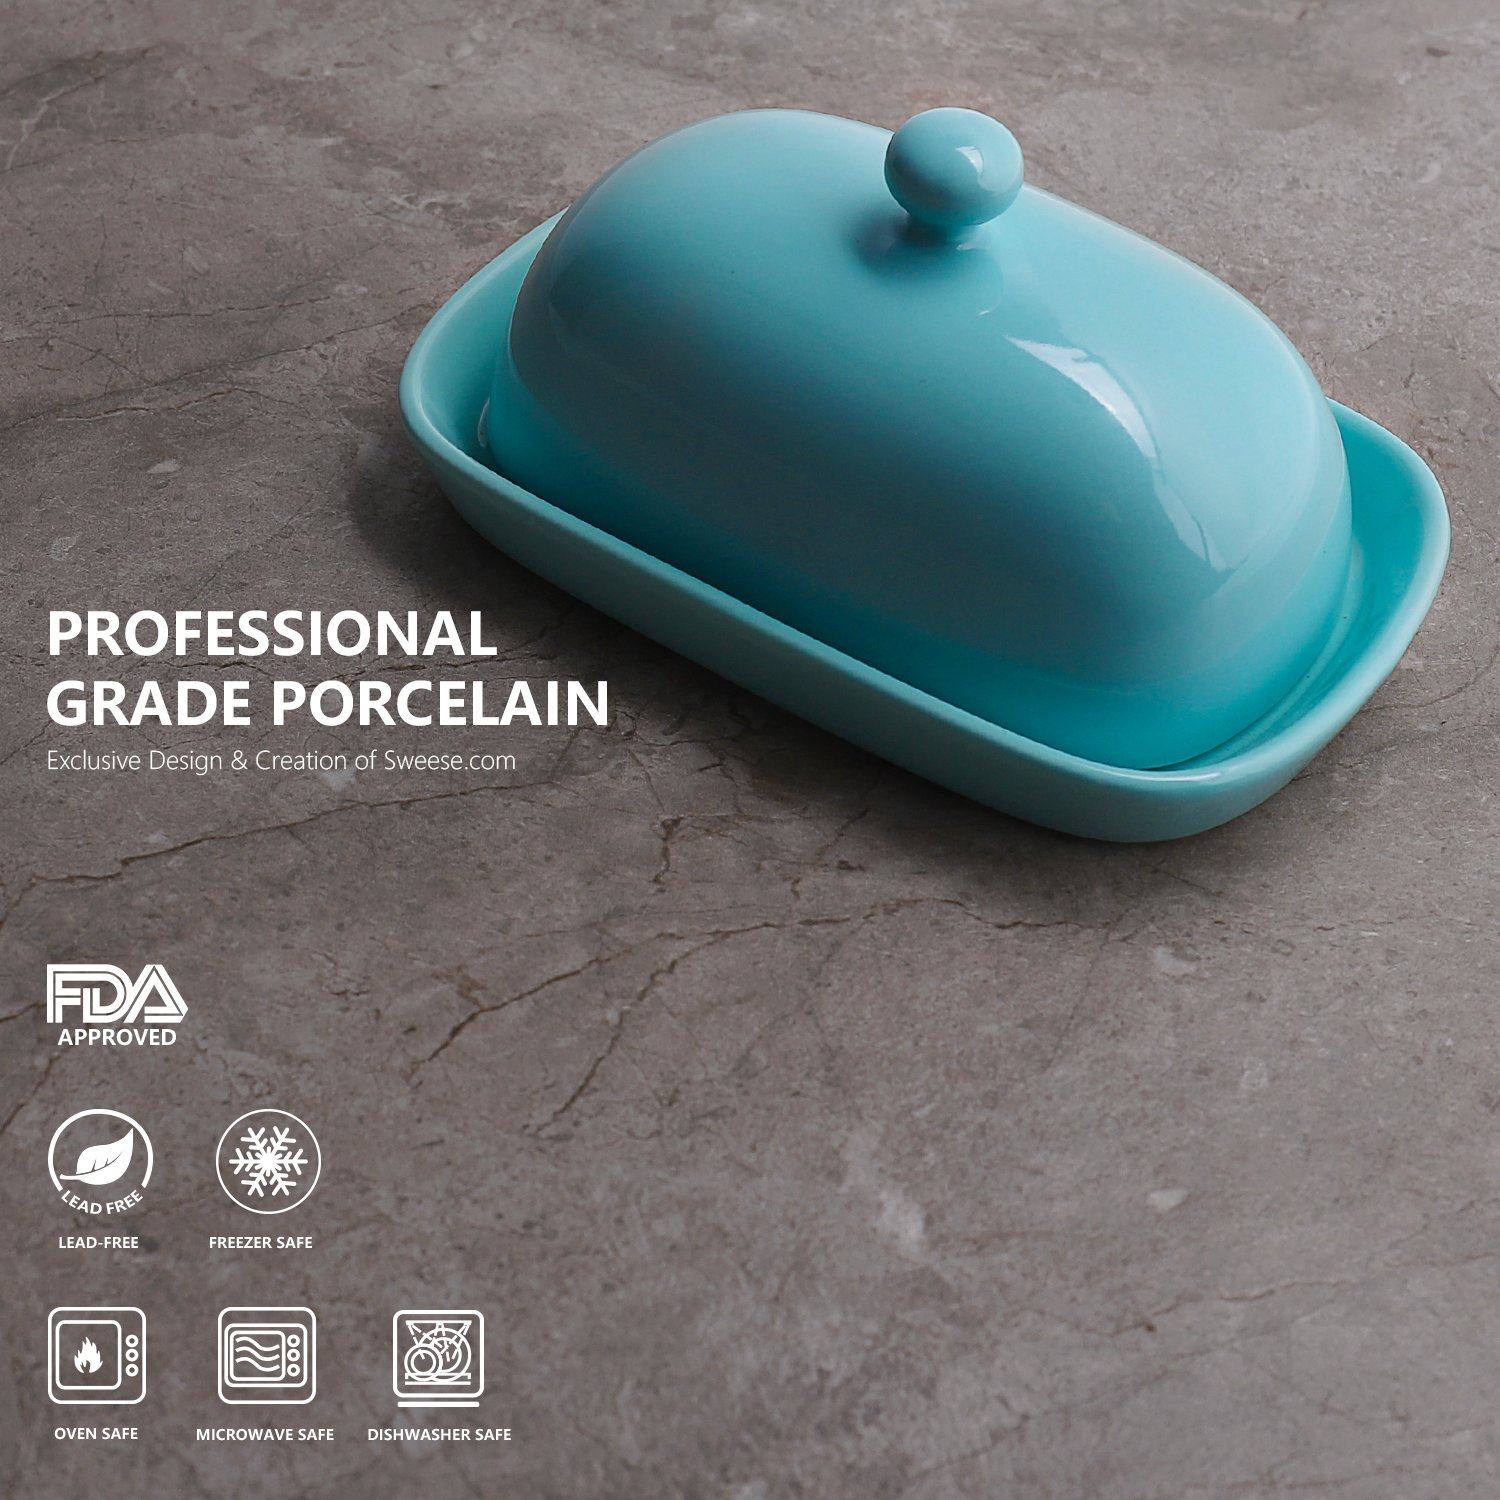 Sweese 3165 Porcelain Cute Butter Dish with Lid, Perfect for East/West Butter, Turquoise by Sweese (Image #2)